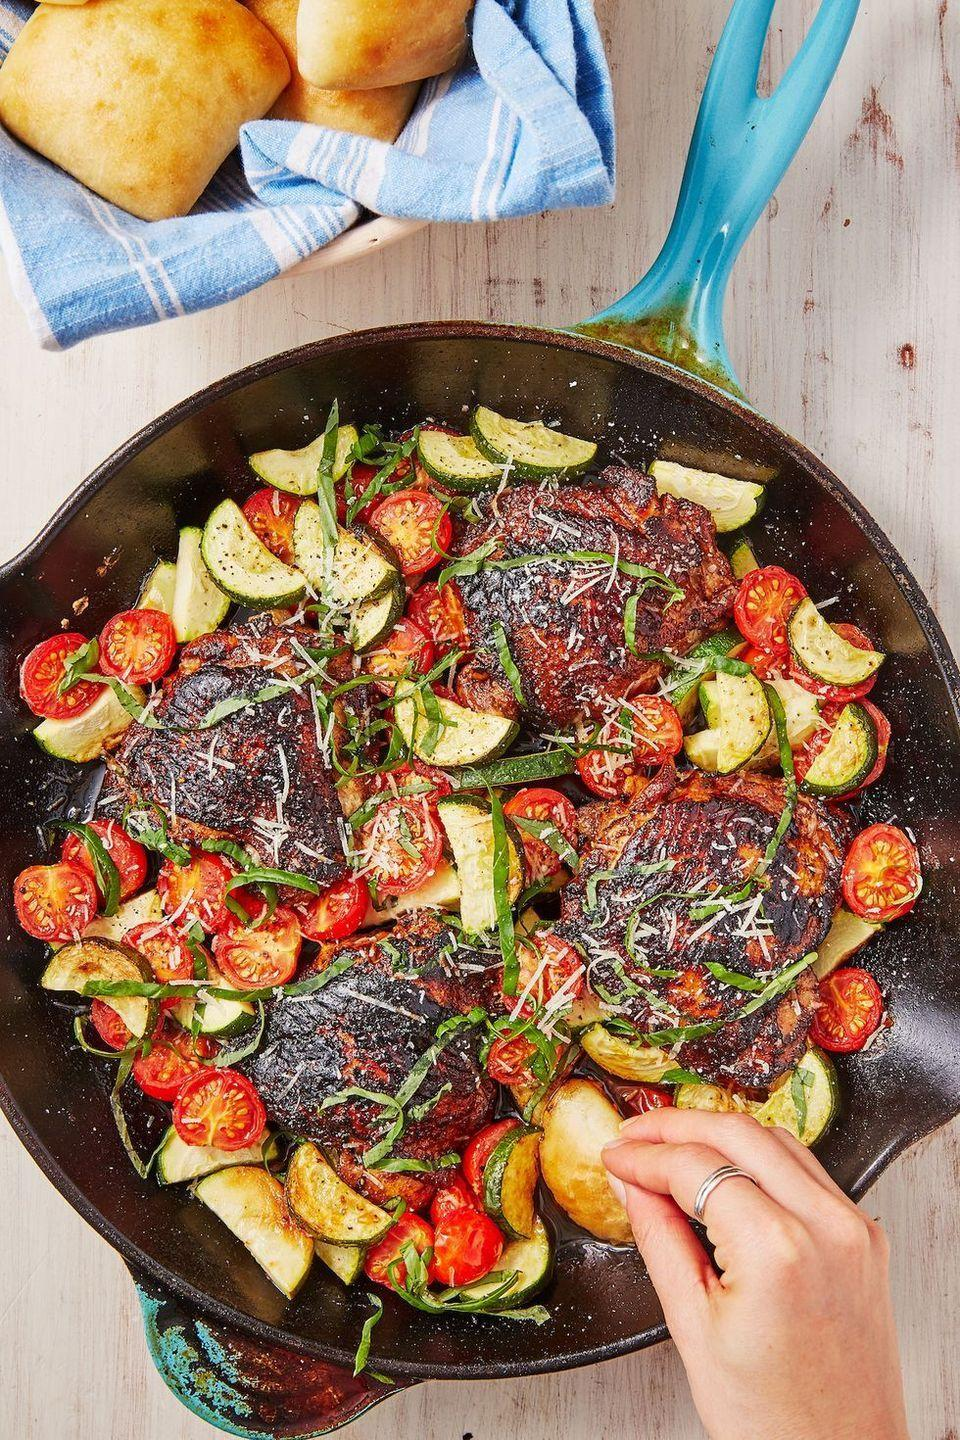 """<p>This is the perfect weeknight dinner. After marinating the chicken, everything — including the veggie side! — comes together in one pan in less than 30 minutes. Call it another <a href=""""https://www.delish.com/uk/chicken-recipes/"""" rel=""""nofollow noopener"""" target=""""_blank"""" data-ylk=""""slk:chicken dinner"""" class=""""link rapid-noclick-resp"""">chicken dinner</a> win!</p><p>Get the <a href=""""https://www.delish.com/uk/cooking/recipes/a29794011/balsamic-basil-chicken-recipe/"""" rel=""""nofollow noopener"""" target=""""_blank"""" data-ylk=""""slk:Balsamic Basil Chicken"""" class=""""link rapid-noclick-resp"""">Balsamic Basil Chicken </a>recipe.</p>"""